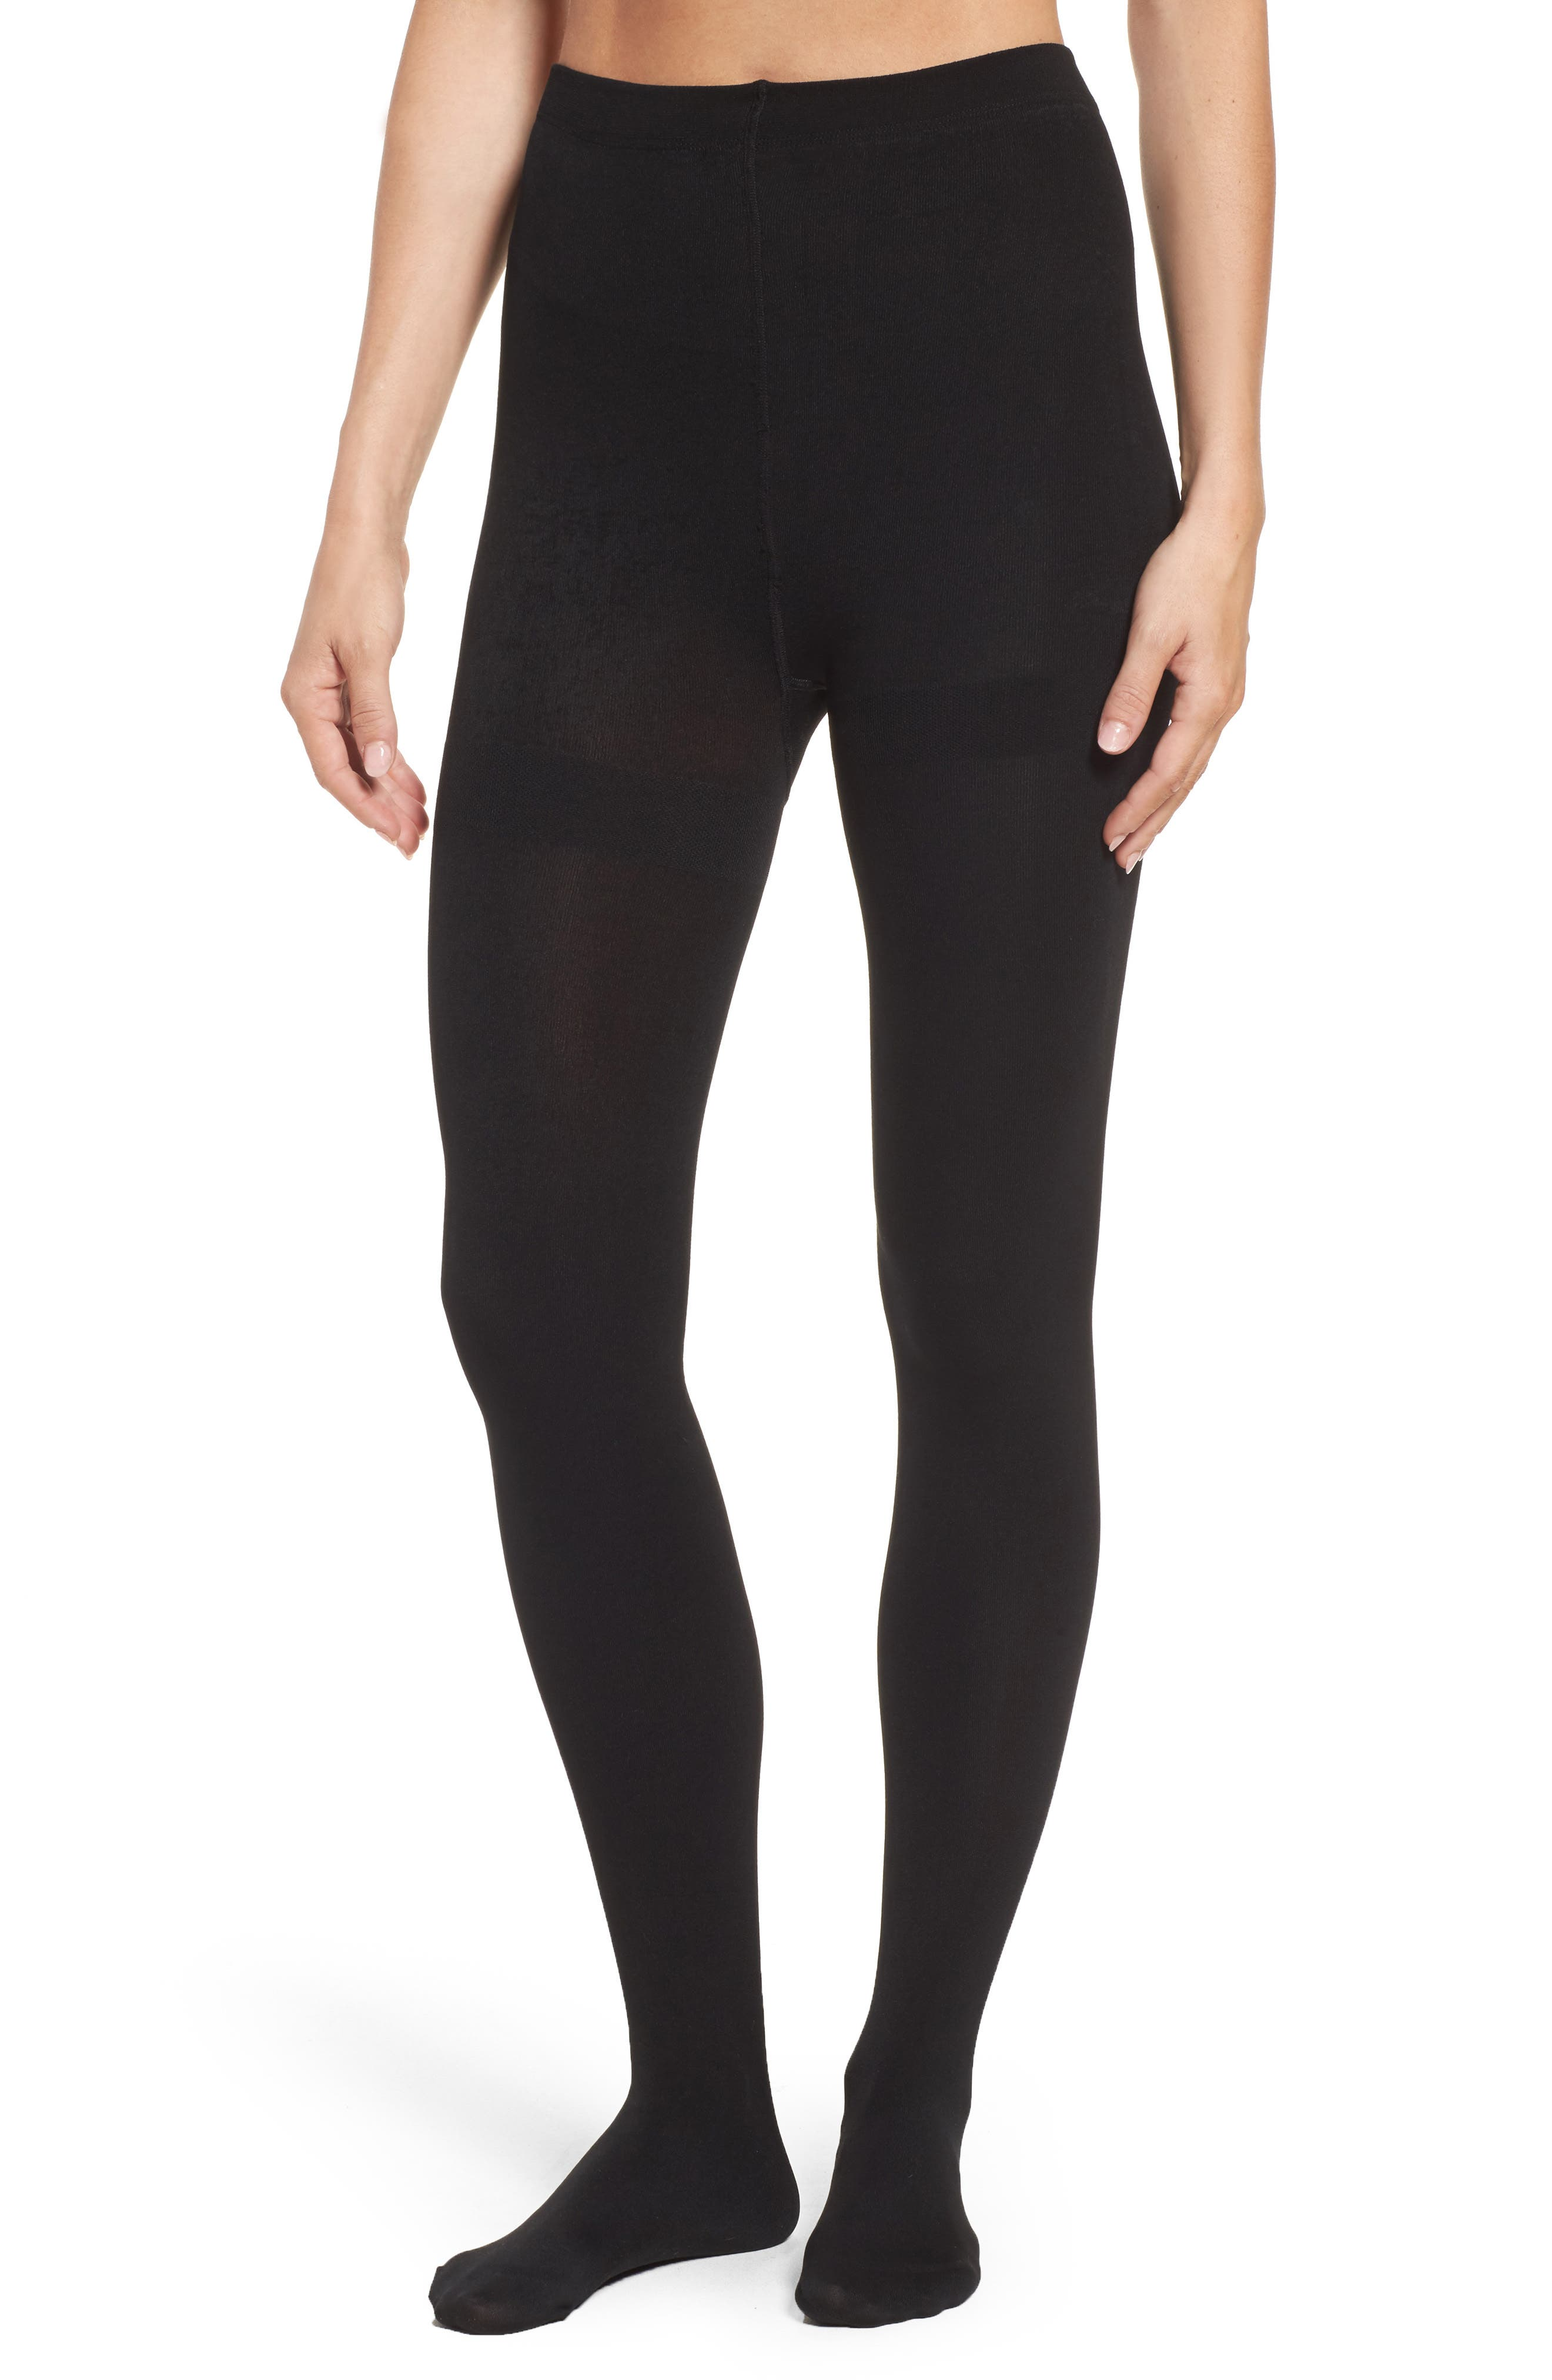 Main Image - Nordstrom Fleece Lined Tights